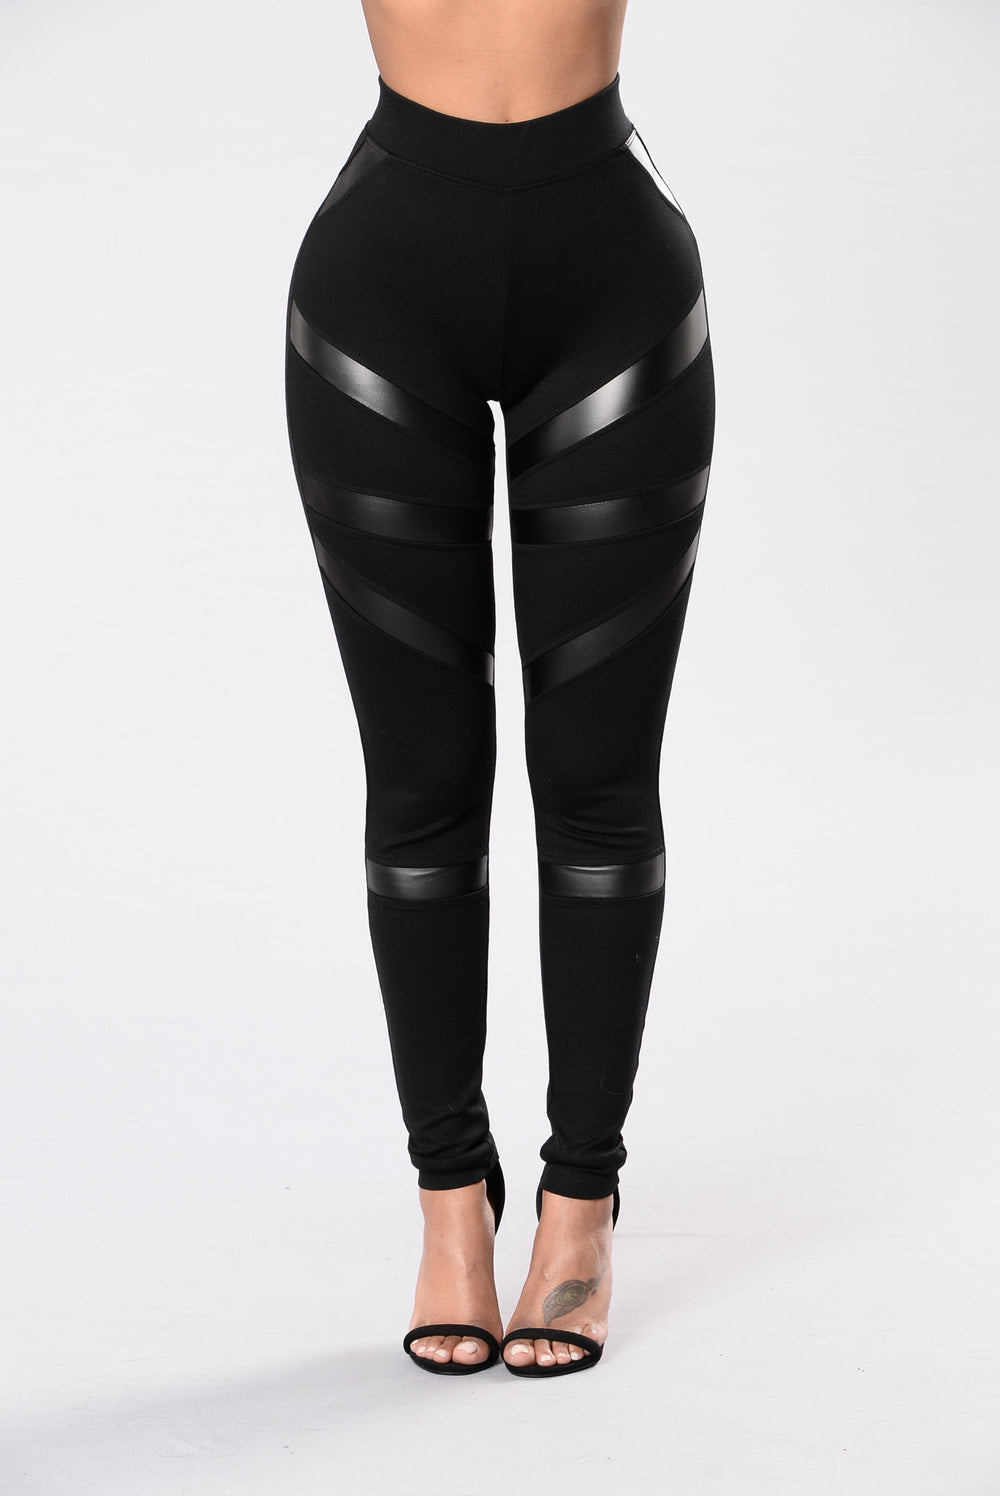 Mislead You Leggings - Black